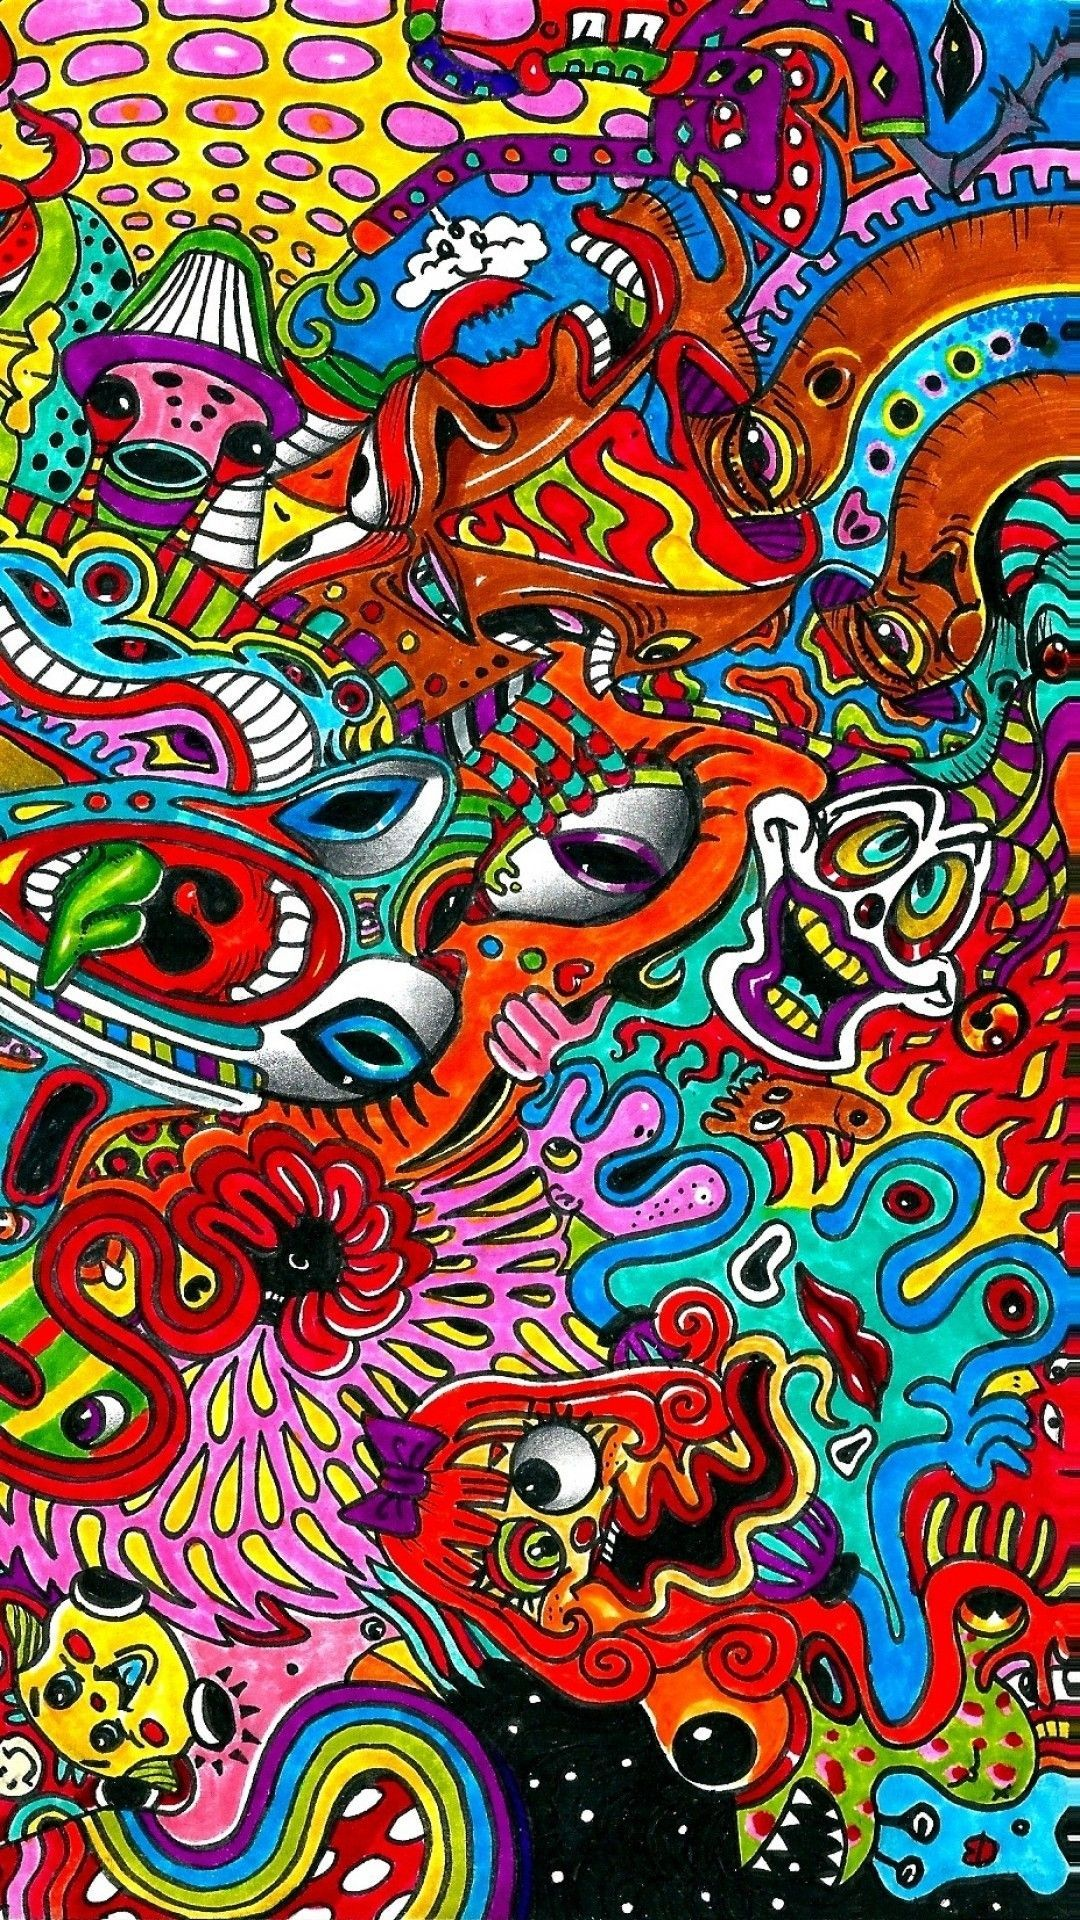 Pin by Mike Yaeger on Amazing in 2019 Trippy wallpaper